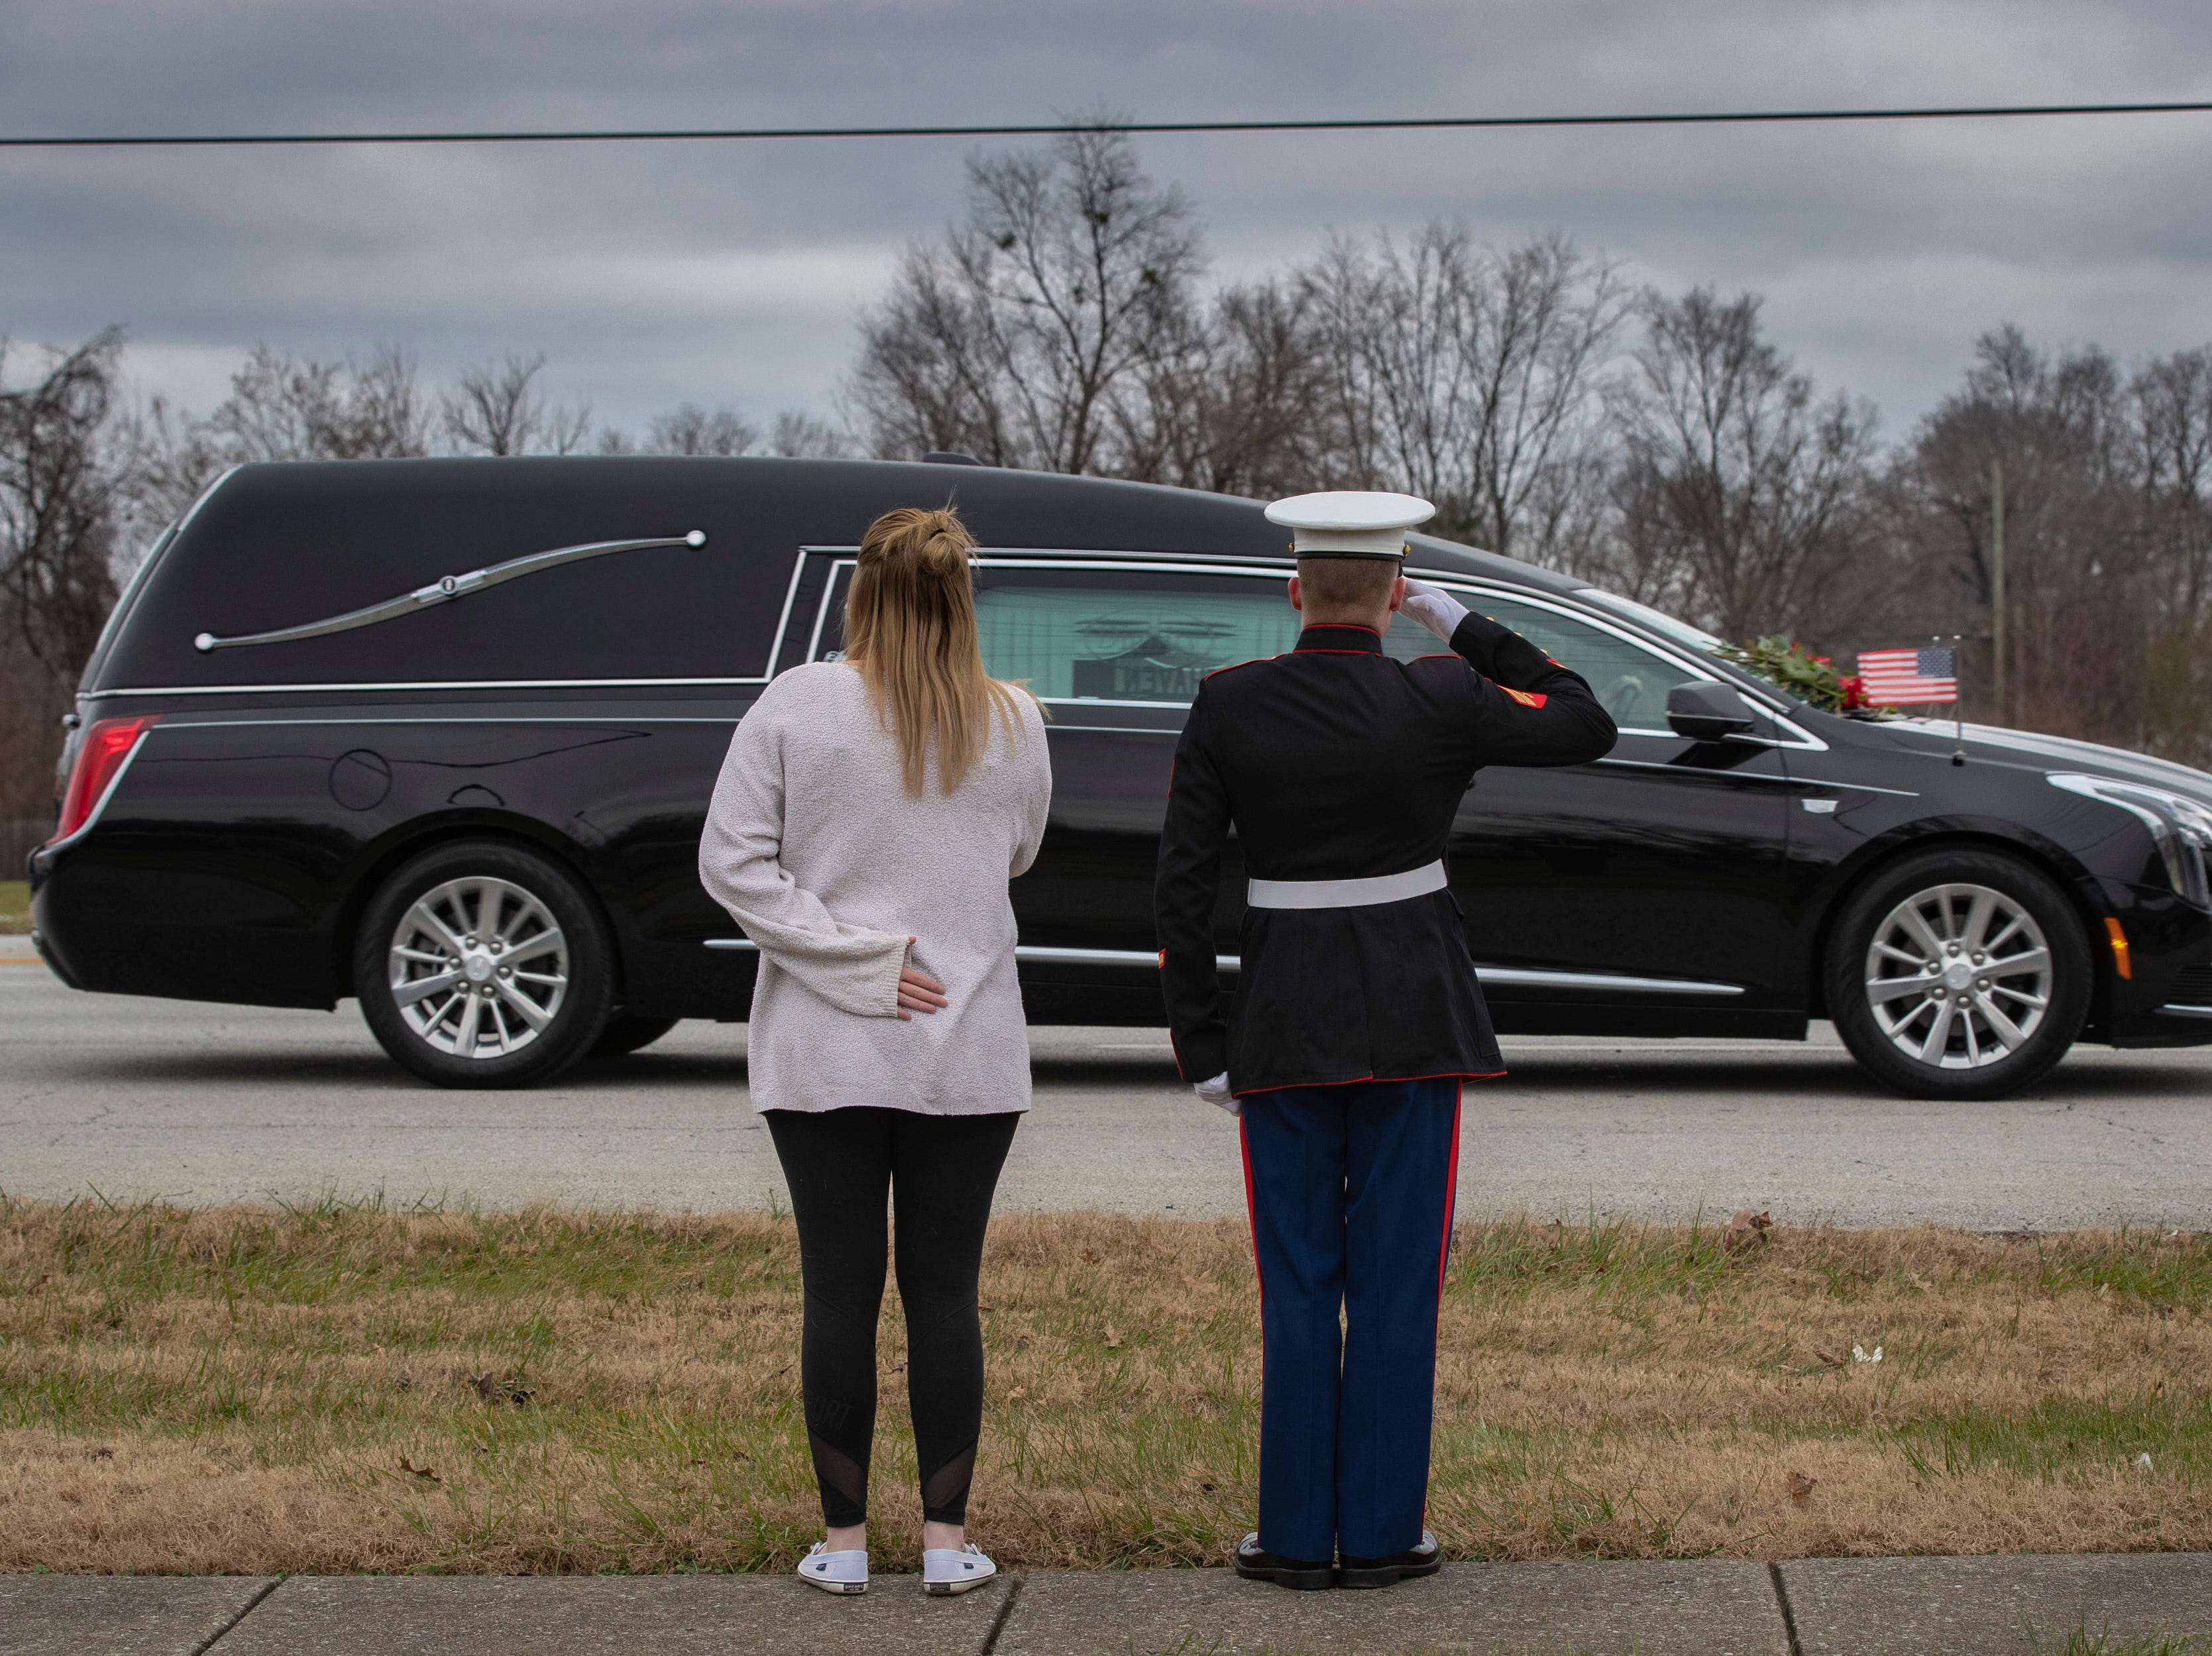 A military officer salutes as the hearse carrying Deidre Mengedoht passes by heading to the Resthaven Funeral Home on Bardstown Road in Louisville, Ky. December 29, 2018